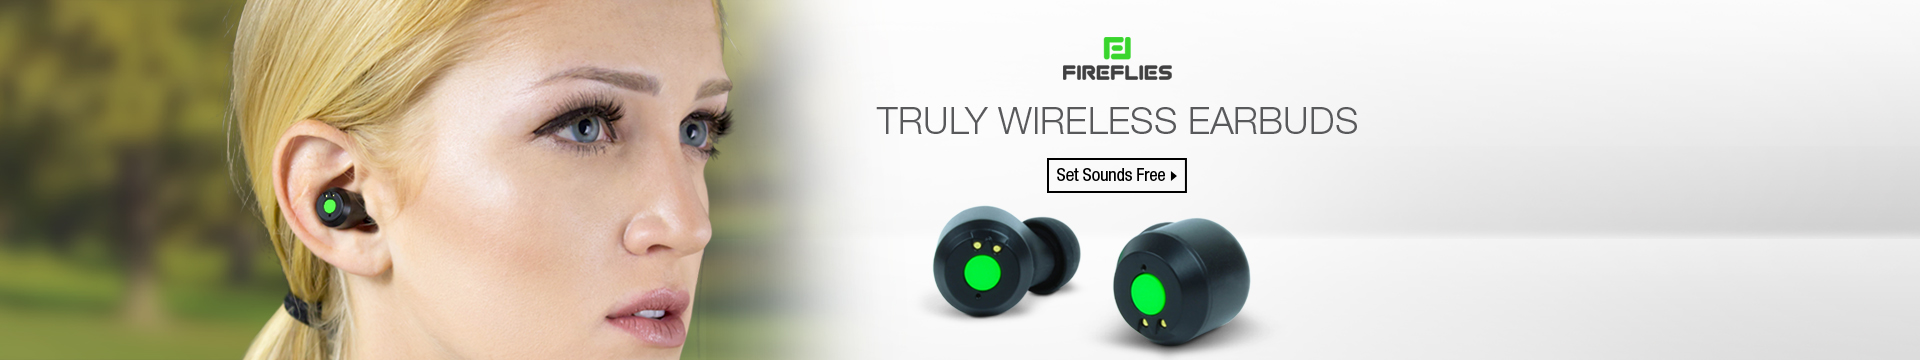 Truly Wireless Earbuds